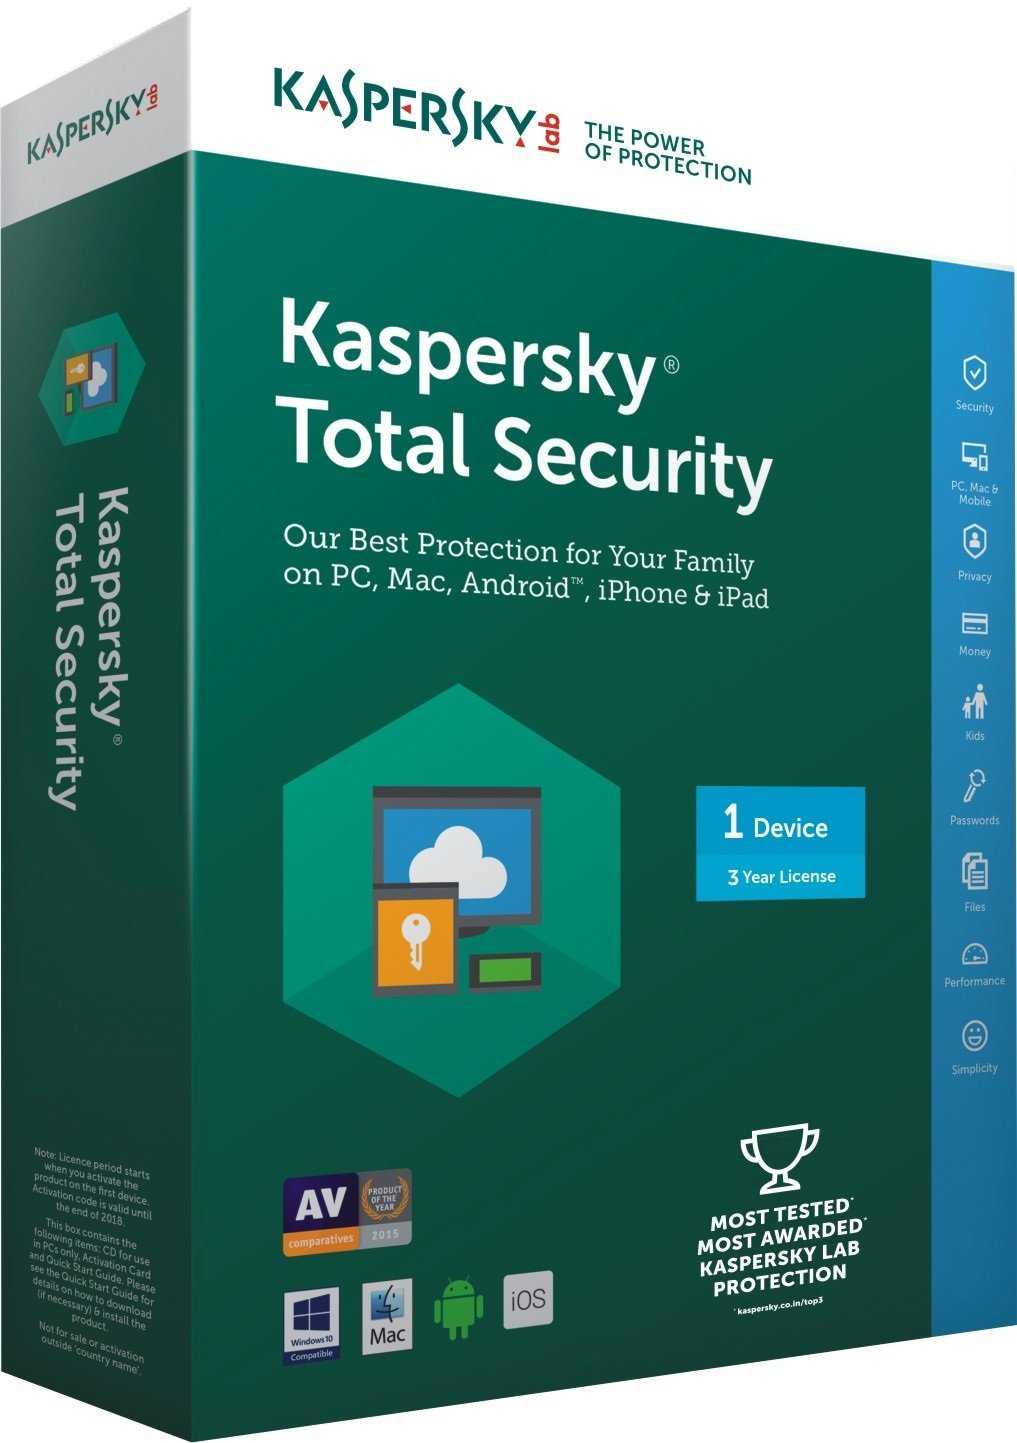 Kaspersky Total Security 2019 license key with keygen for free